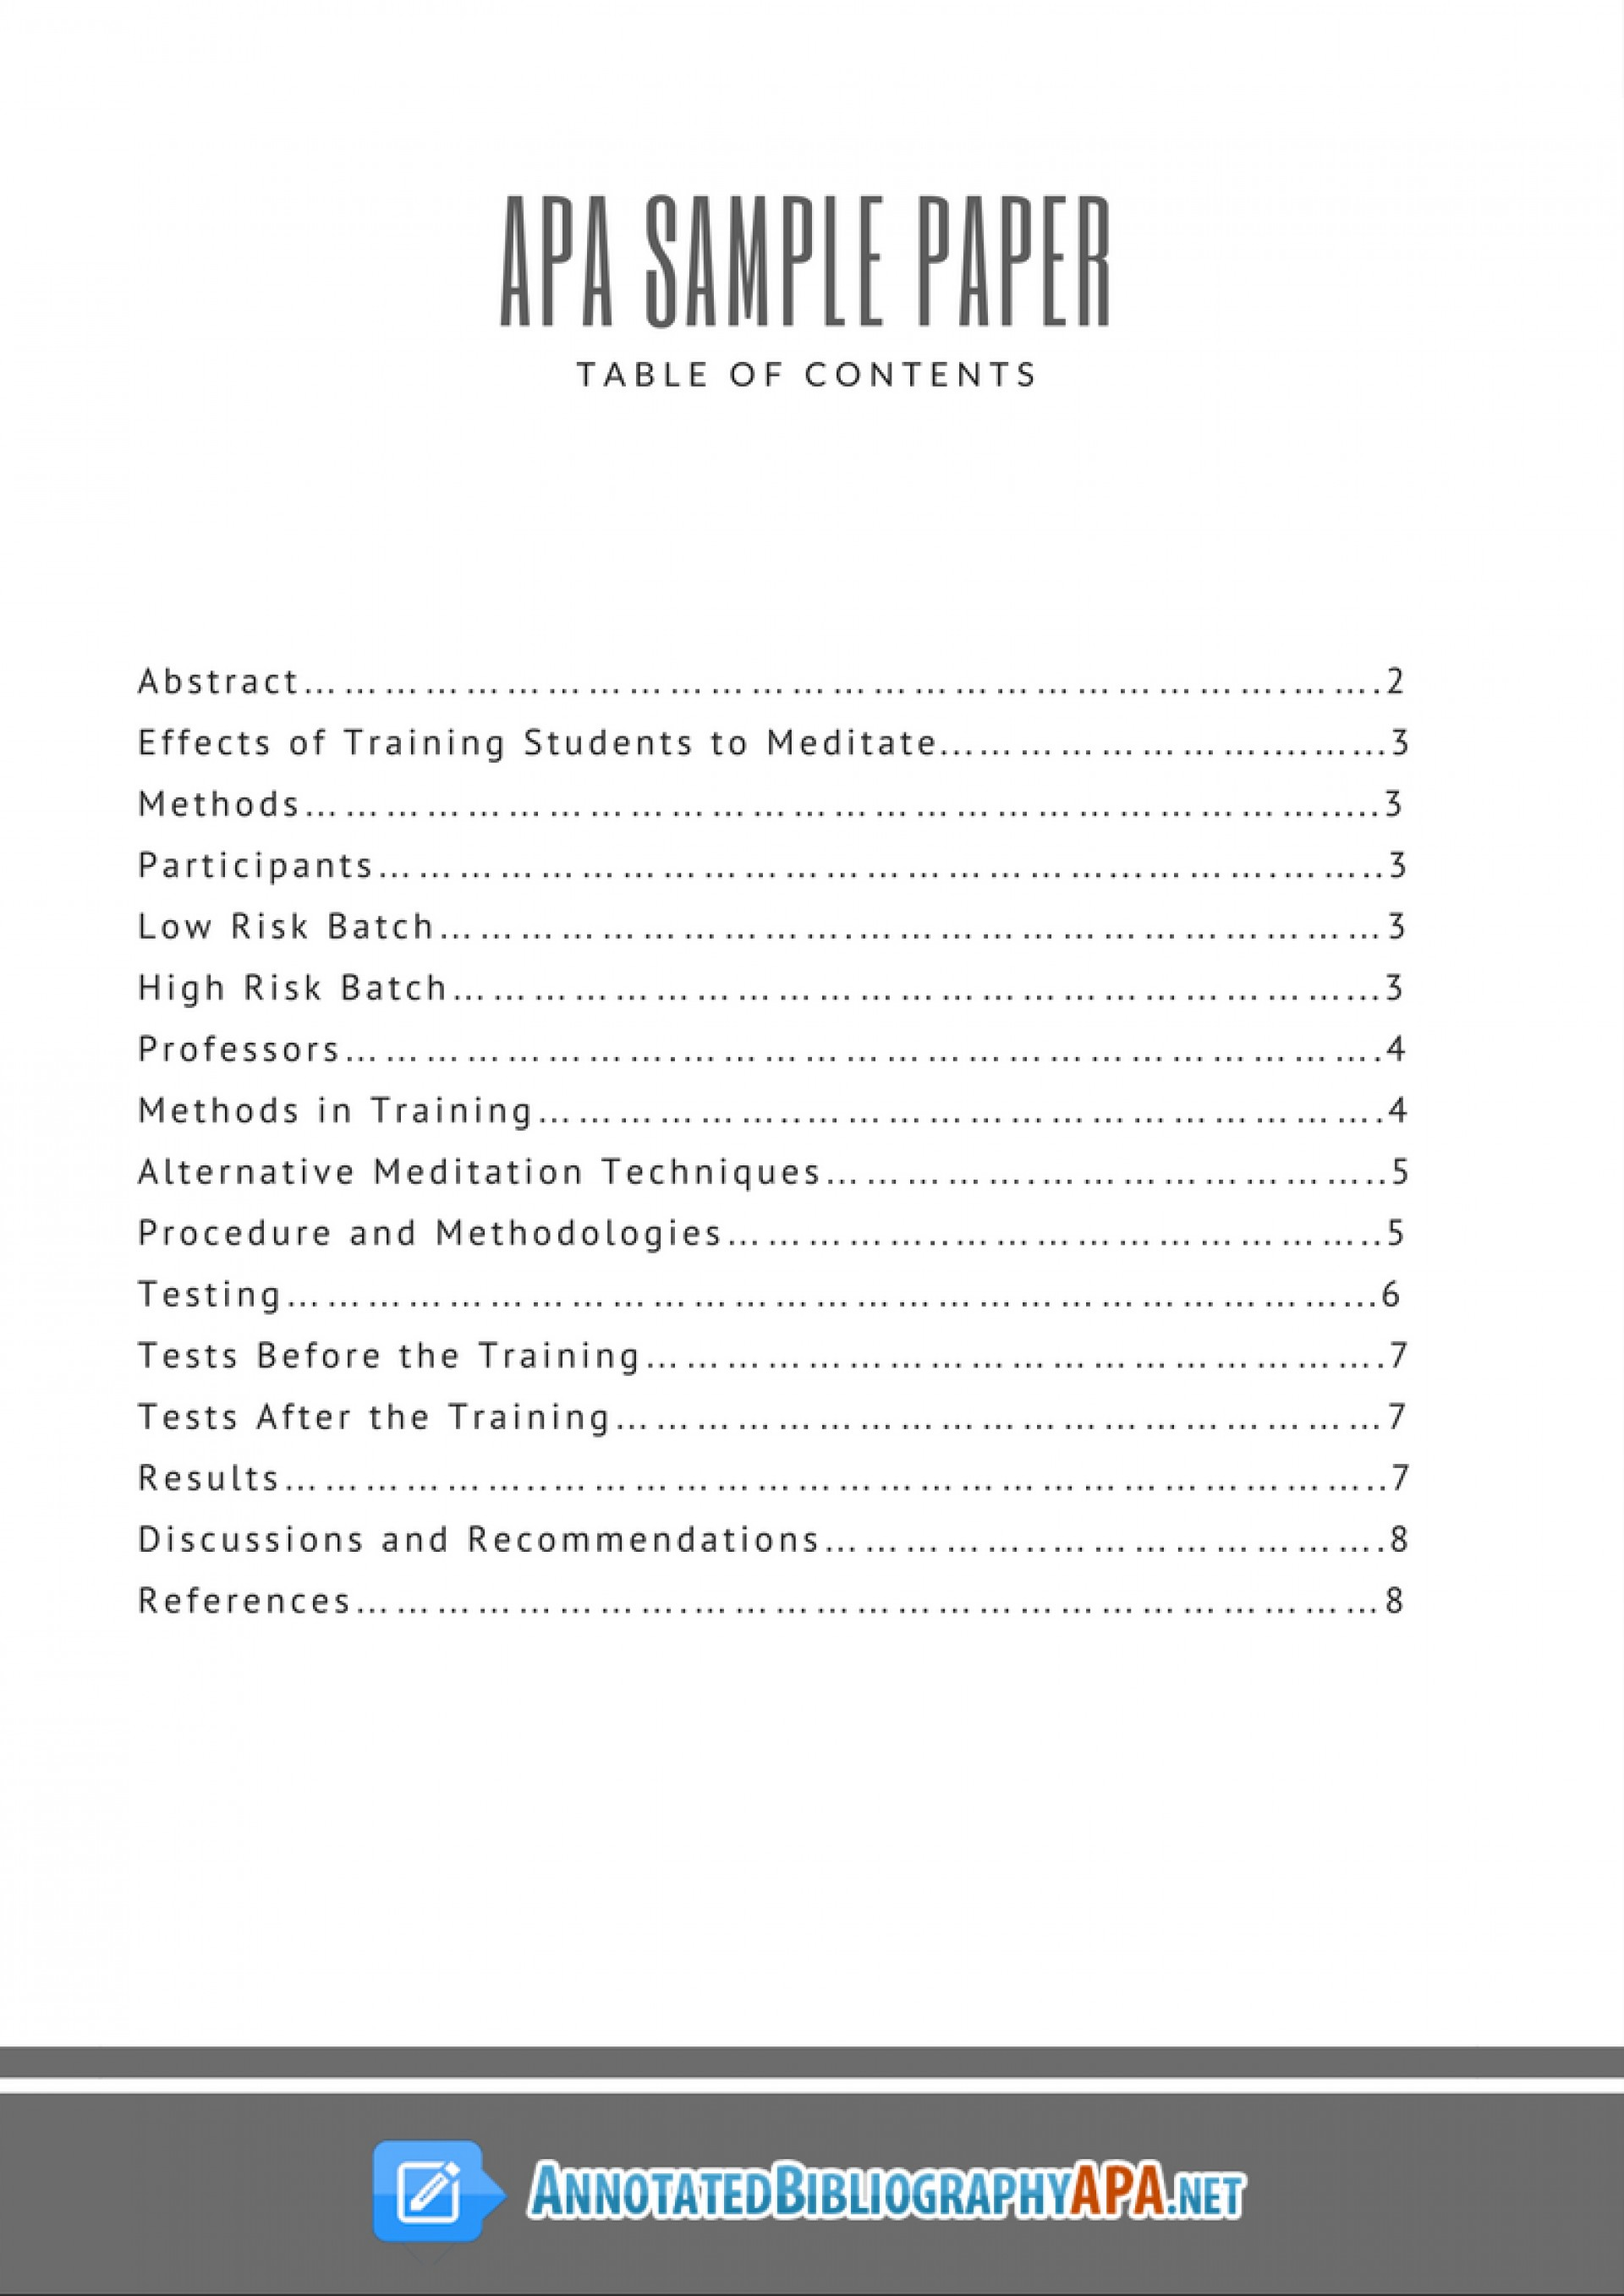 003 Apa Style Research Paper Sample With Table Of Remarkable Contents 1920